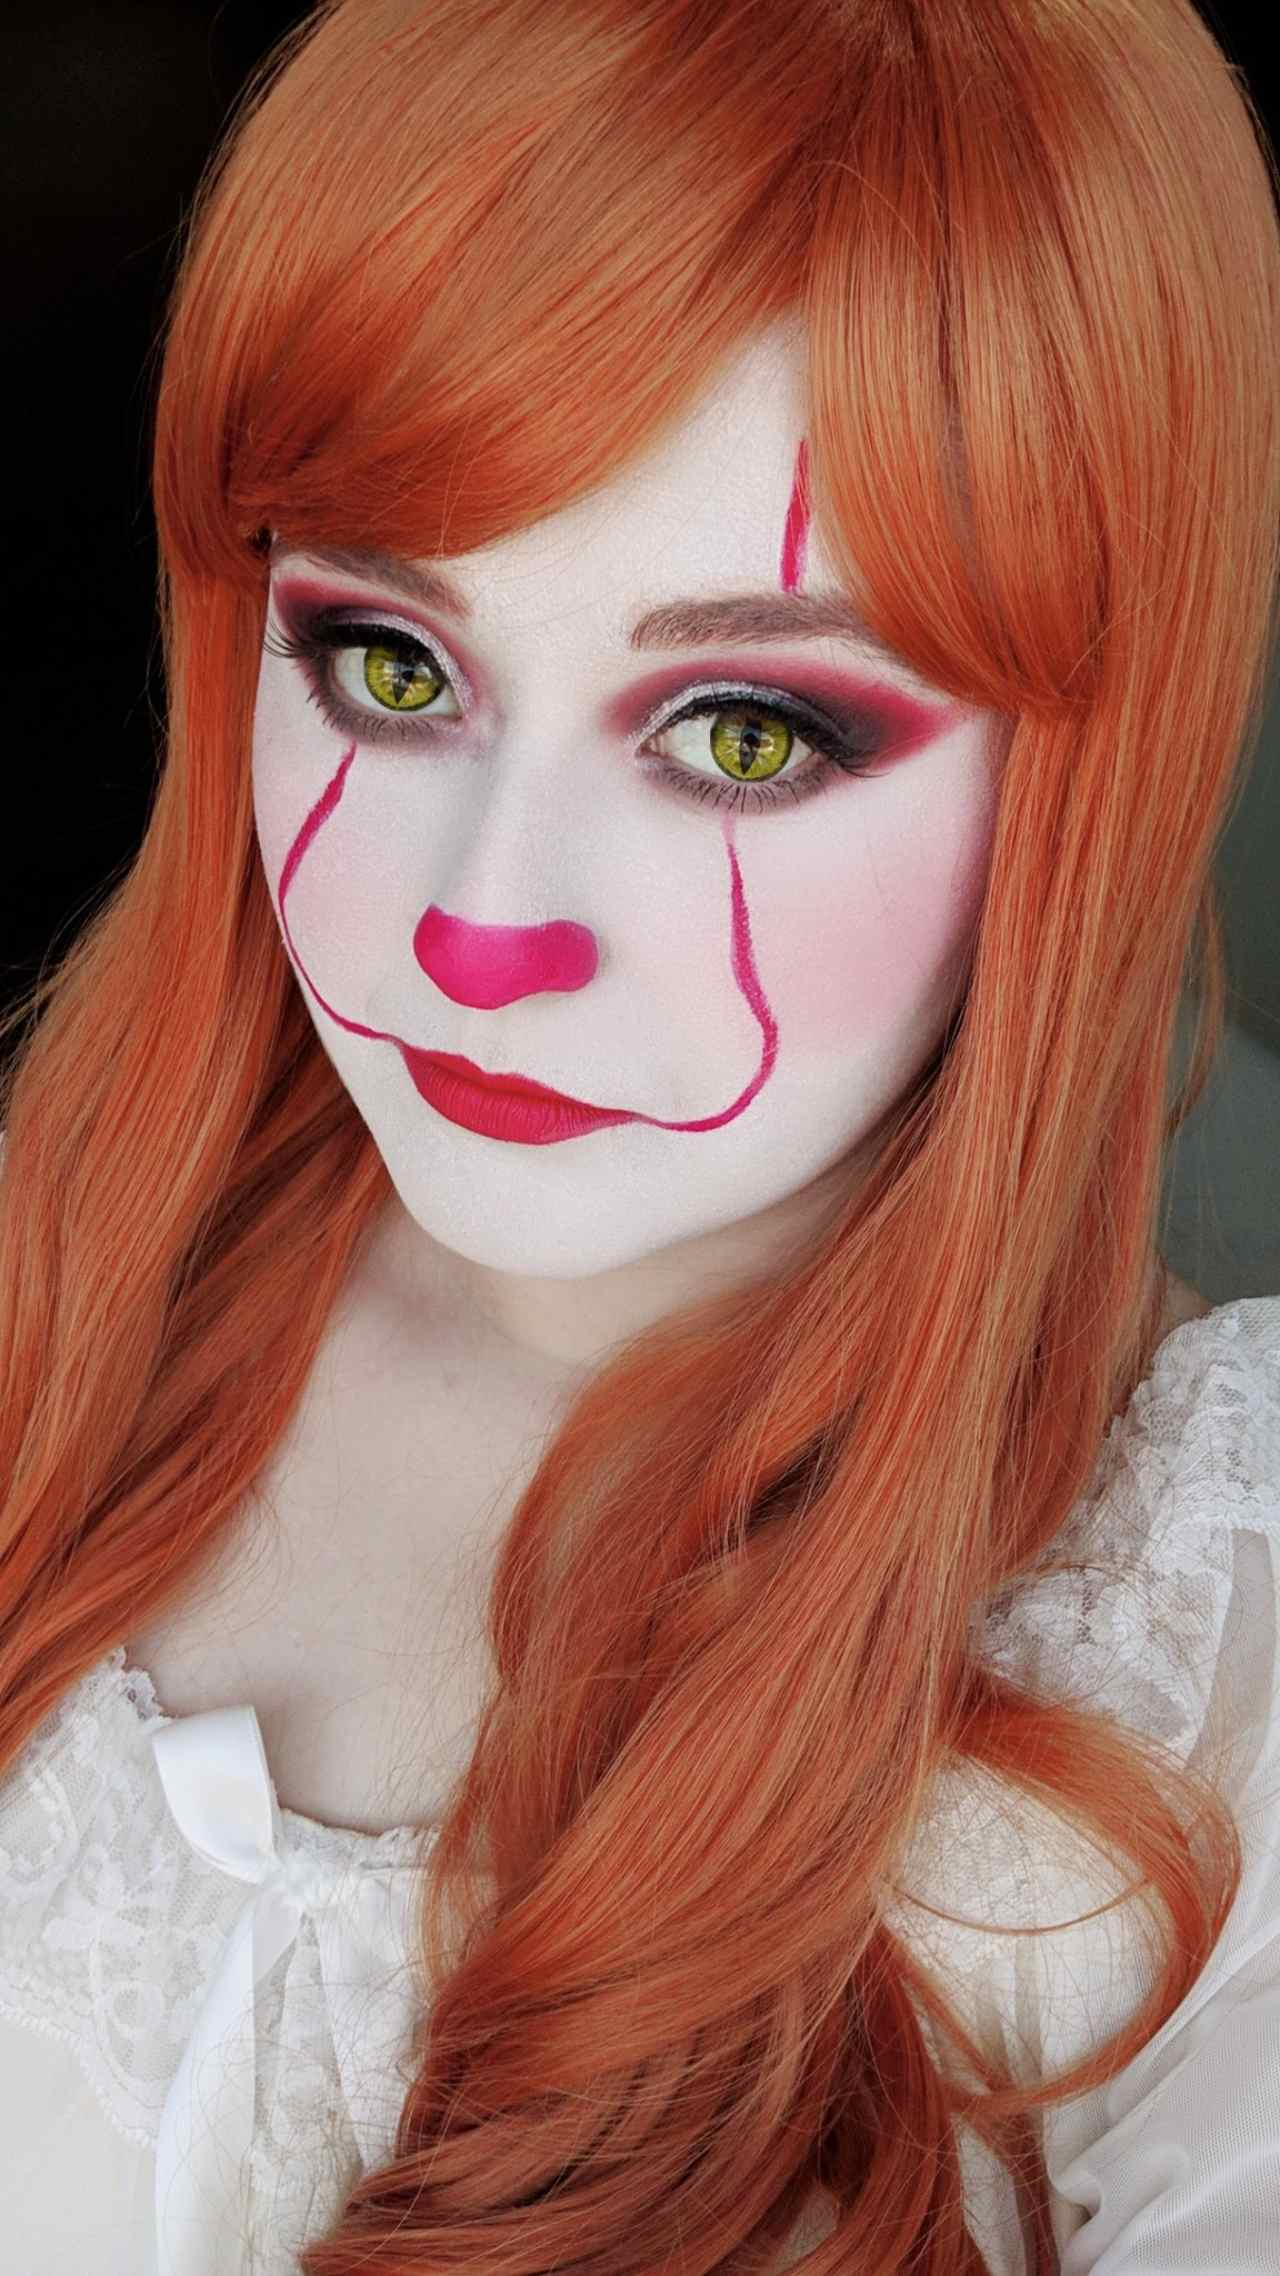 pennywise personaje popular cosplay tv